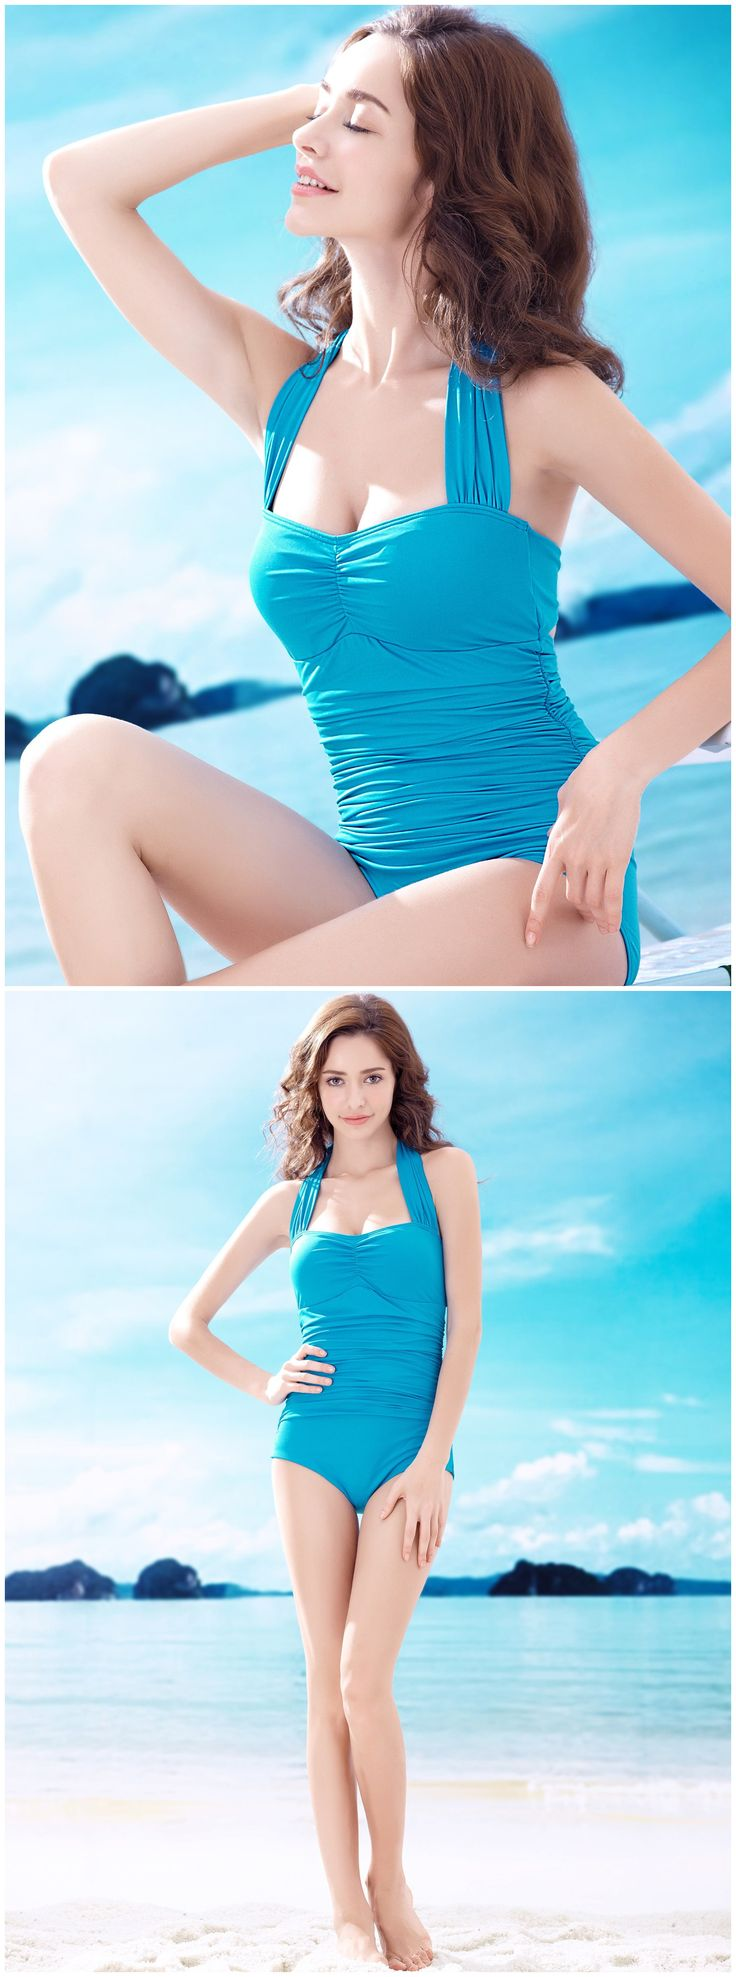 Summer Elegant Style Charming Unique Pleated Sexy Padded Wireless Push Up Halter Neck One Piece Slim Conjoined Swimsuits http://www.amazon.co.uk/s/ref=sr_il_ti_merchant-items?me=AWH6KY5XWWO07&rh=i%3Amerchant-items&ie=UTF8&qid=1433385992&lo=merchant-items